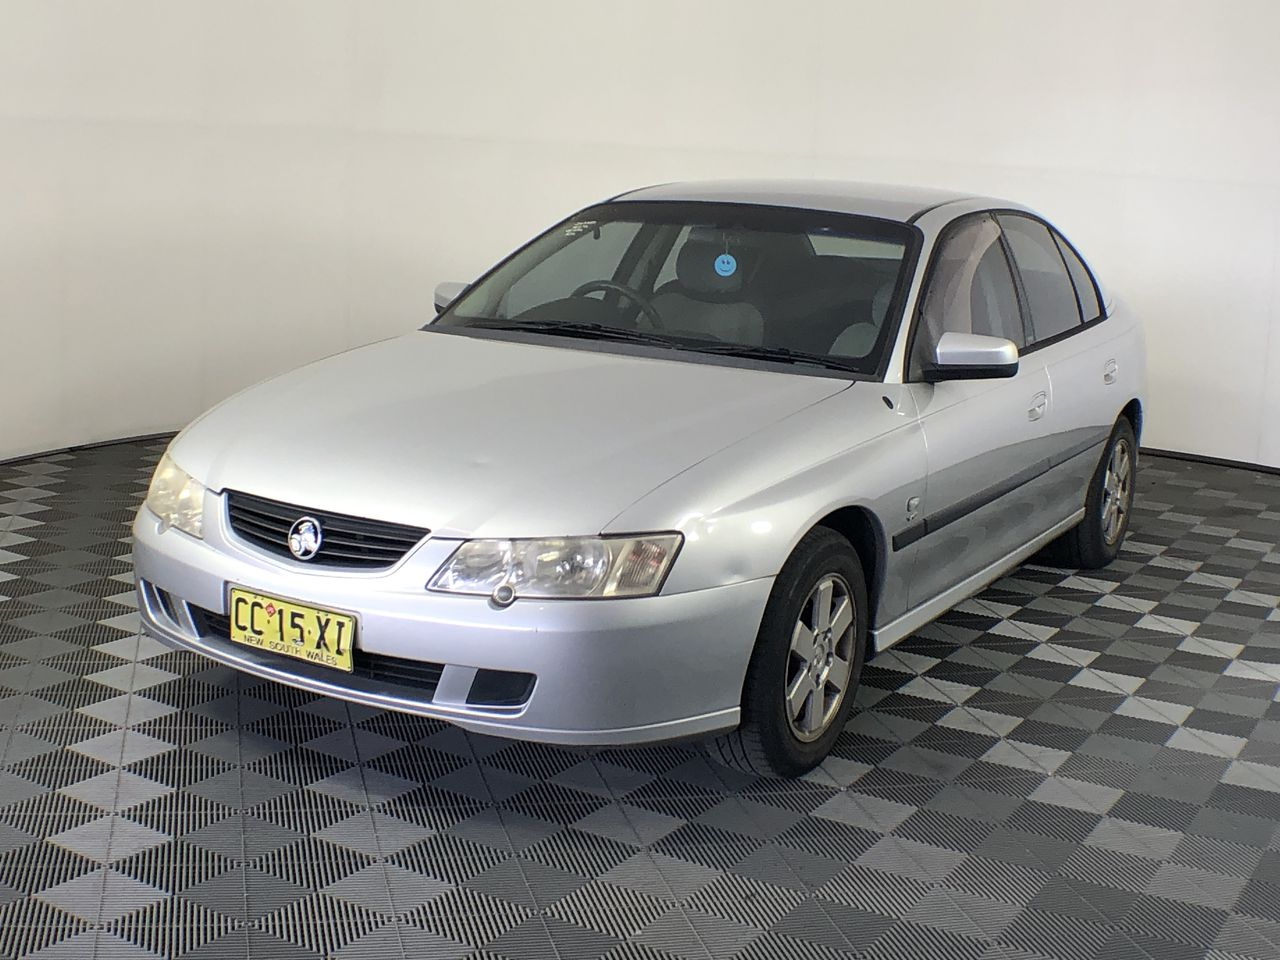 2002 Holden Commodore Acclaim Y Series Automatic Sedan